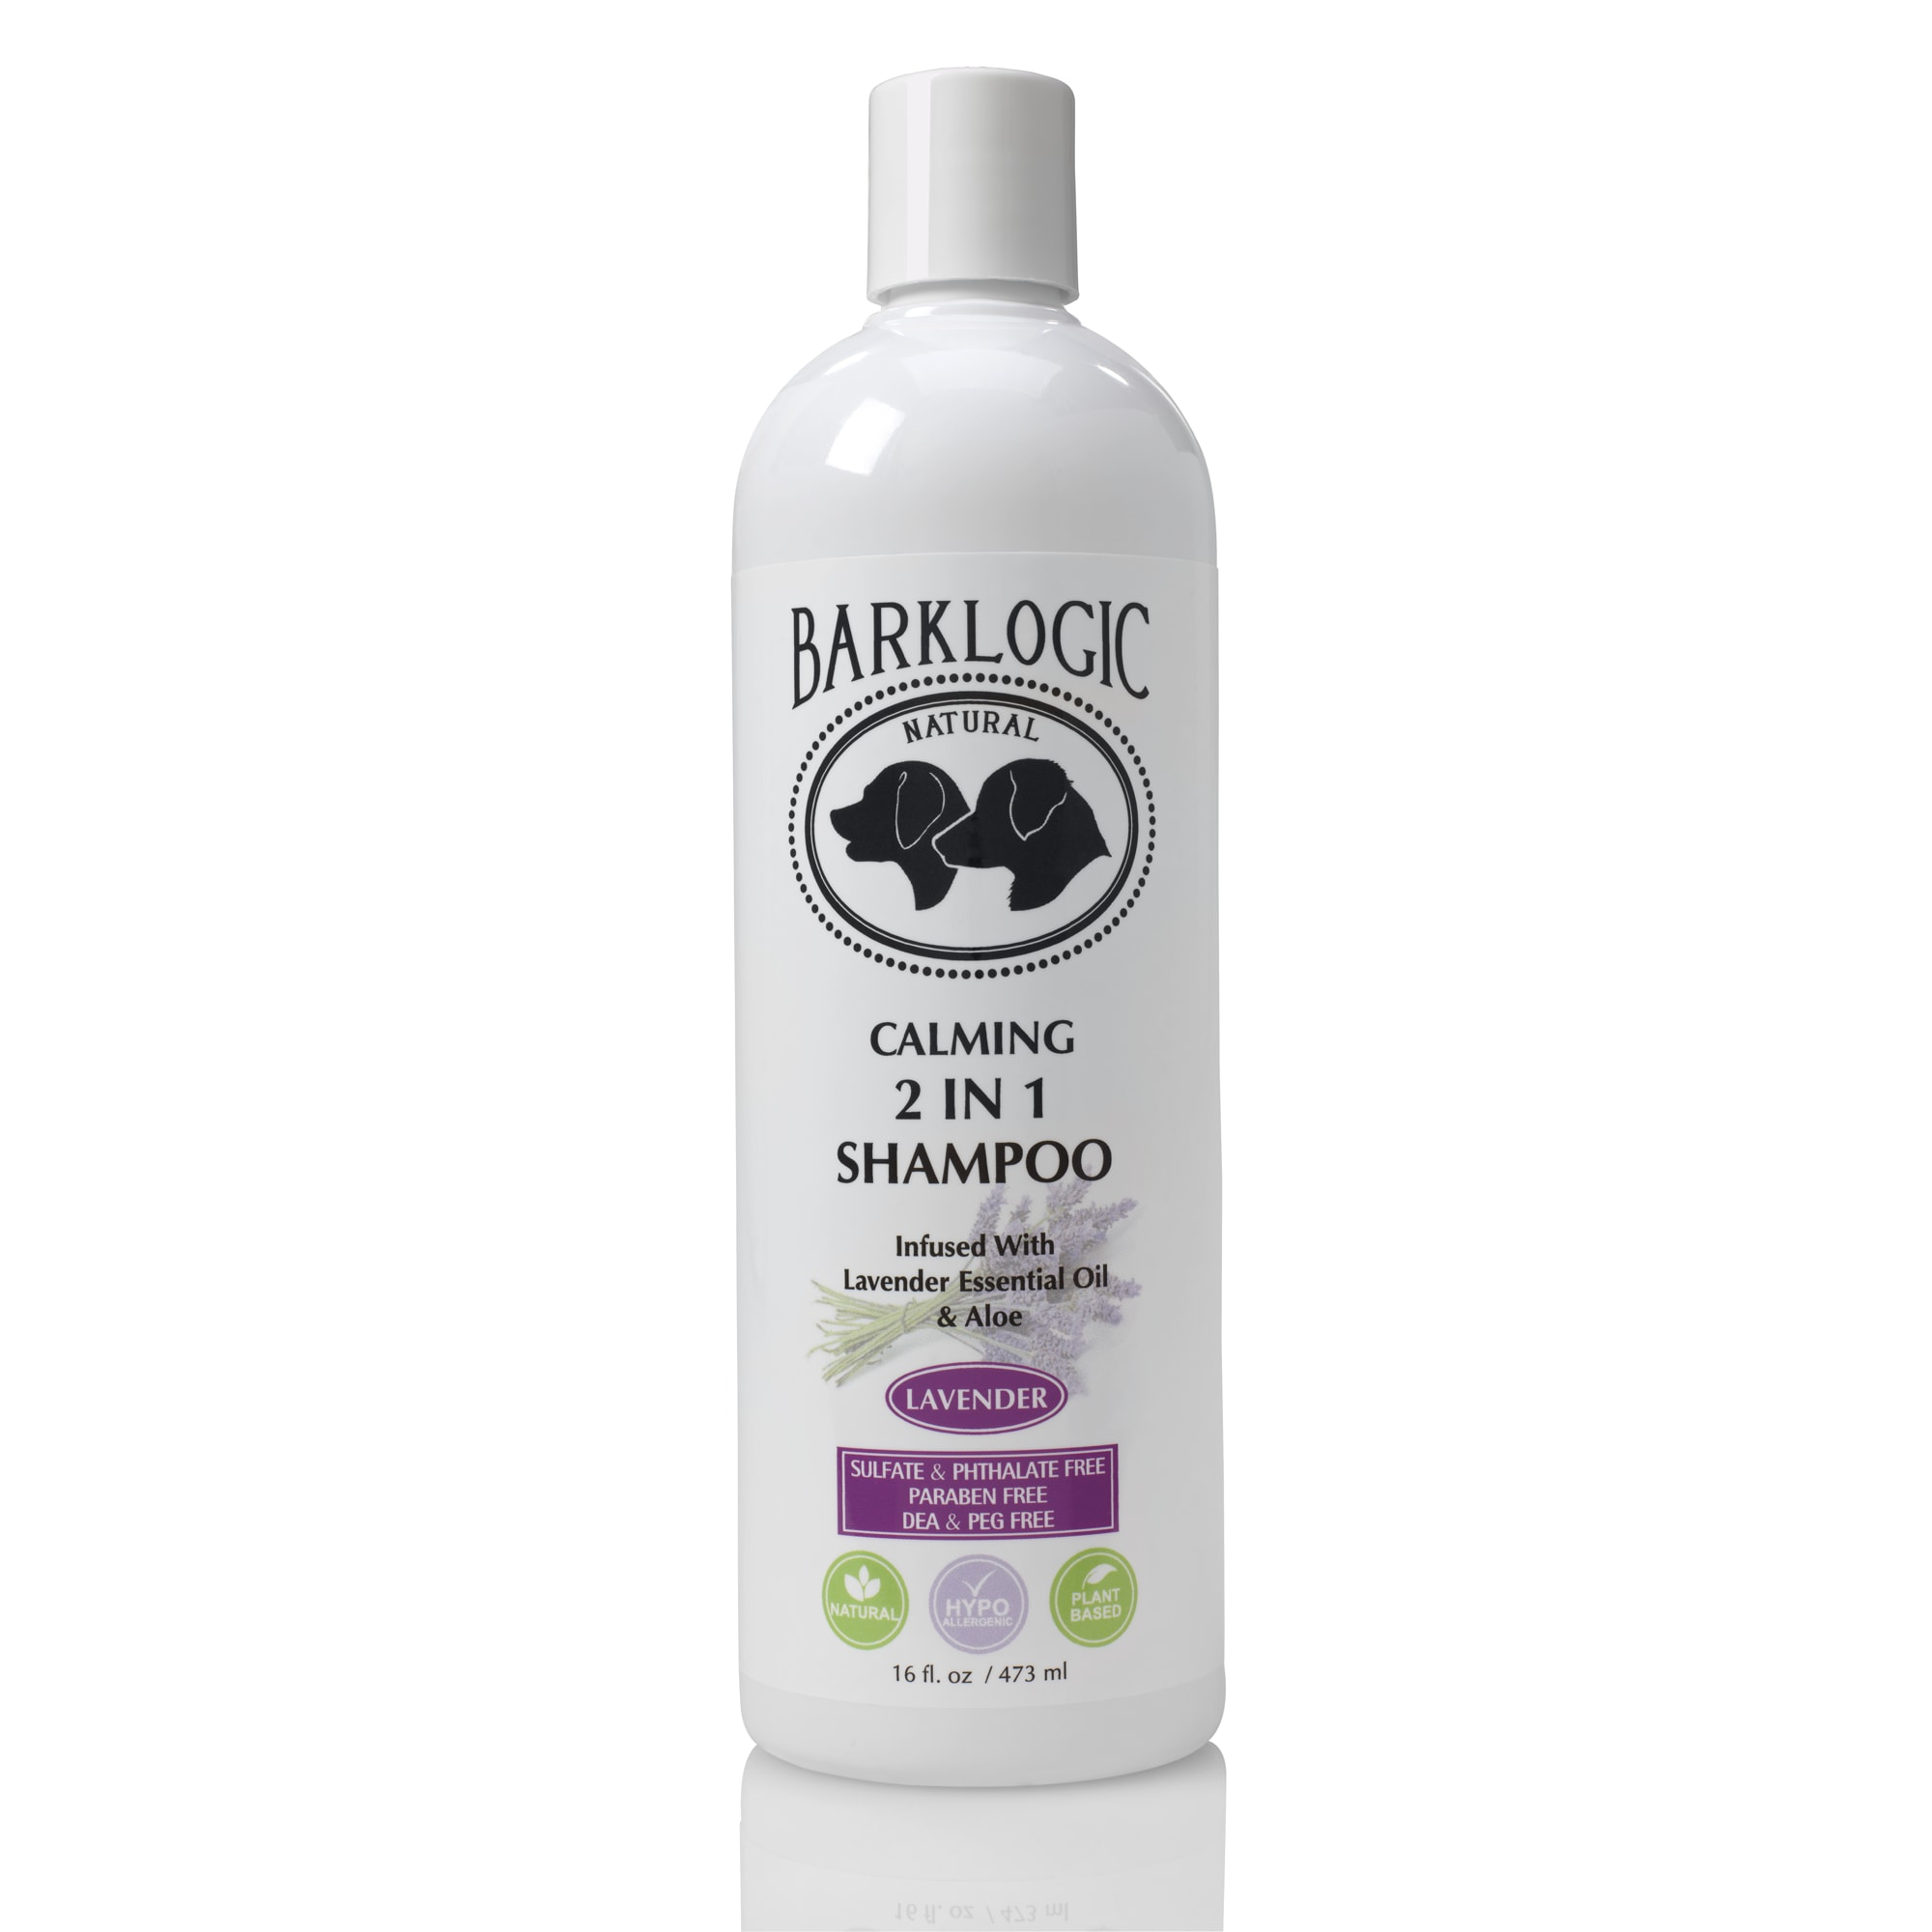 Barklogic Calming 2 in 1 Shampoo, 16 oz.